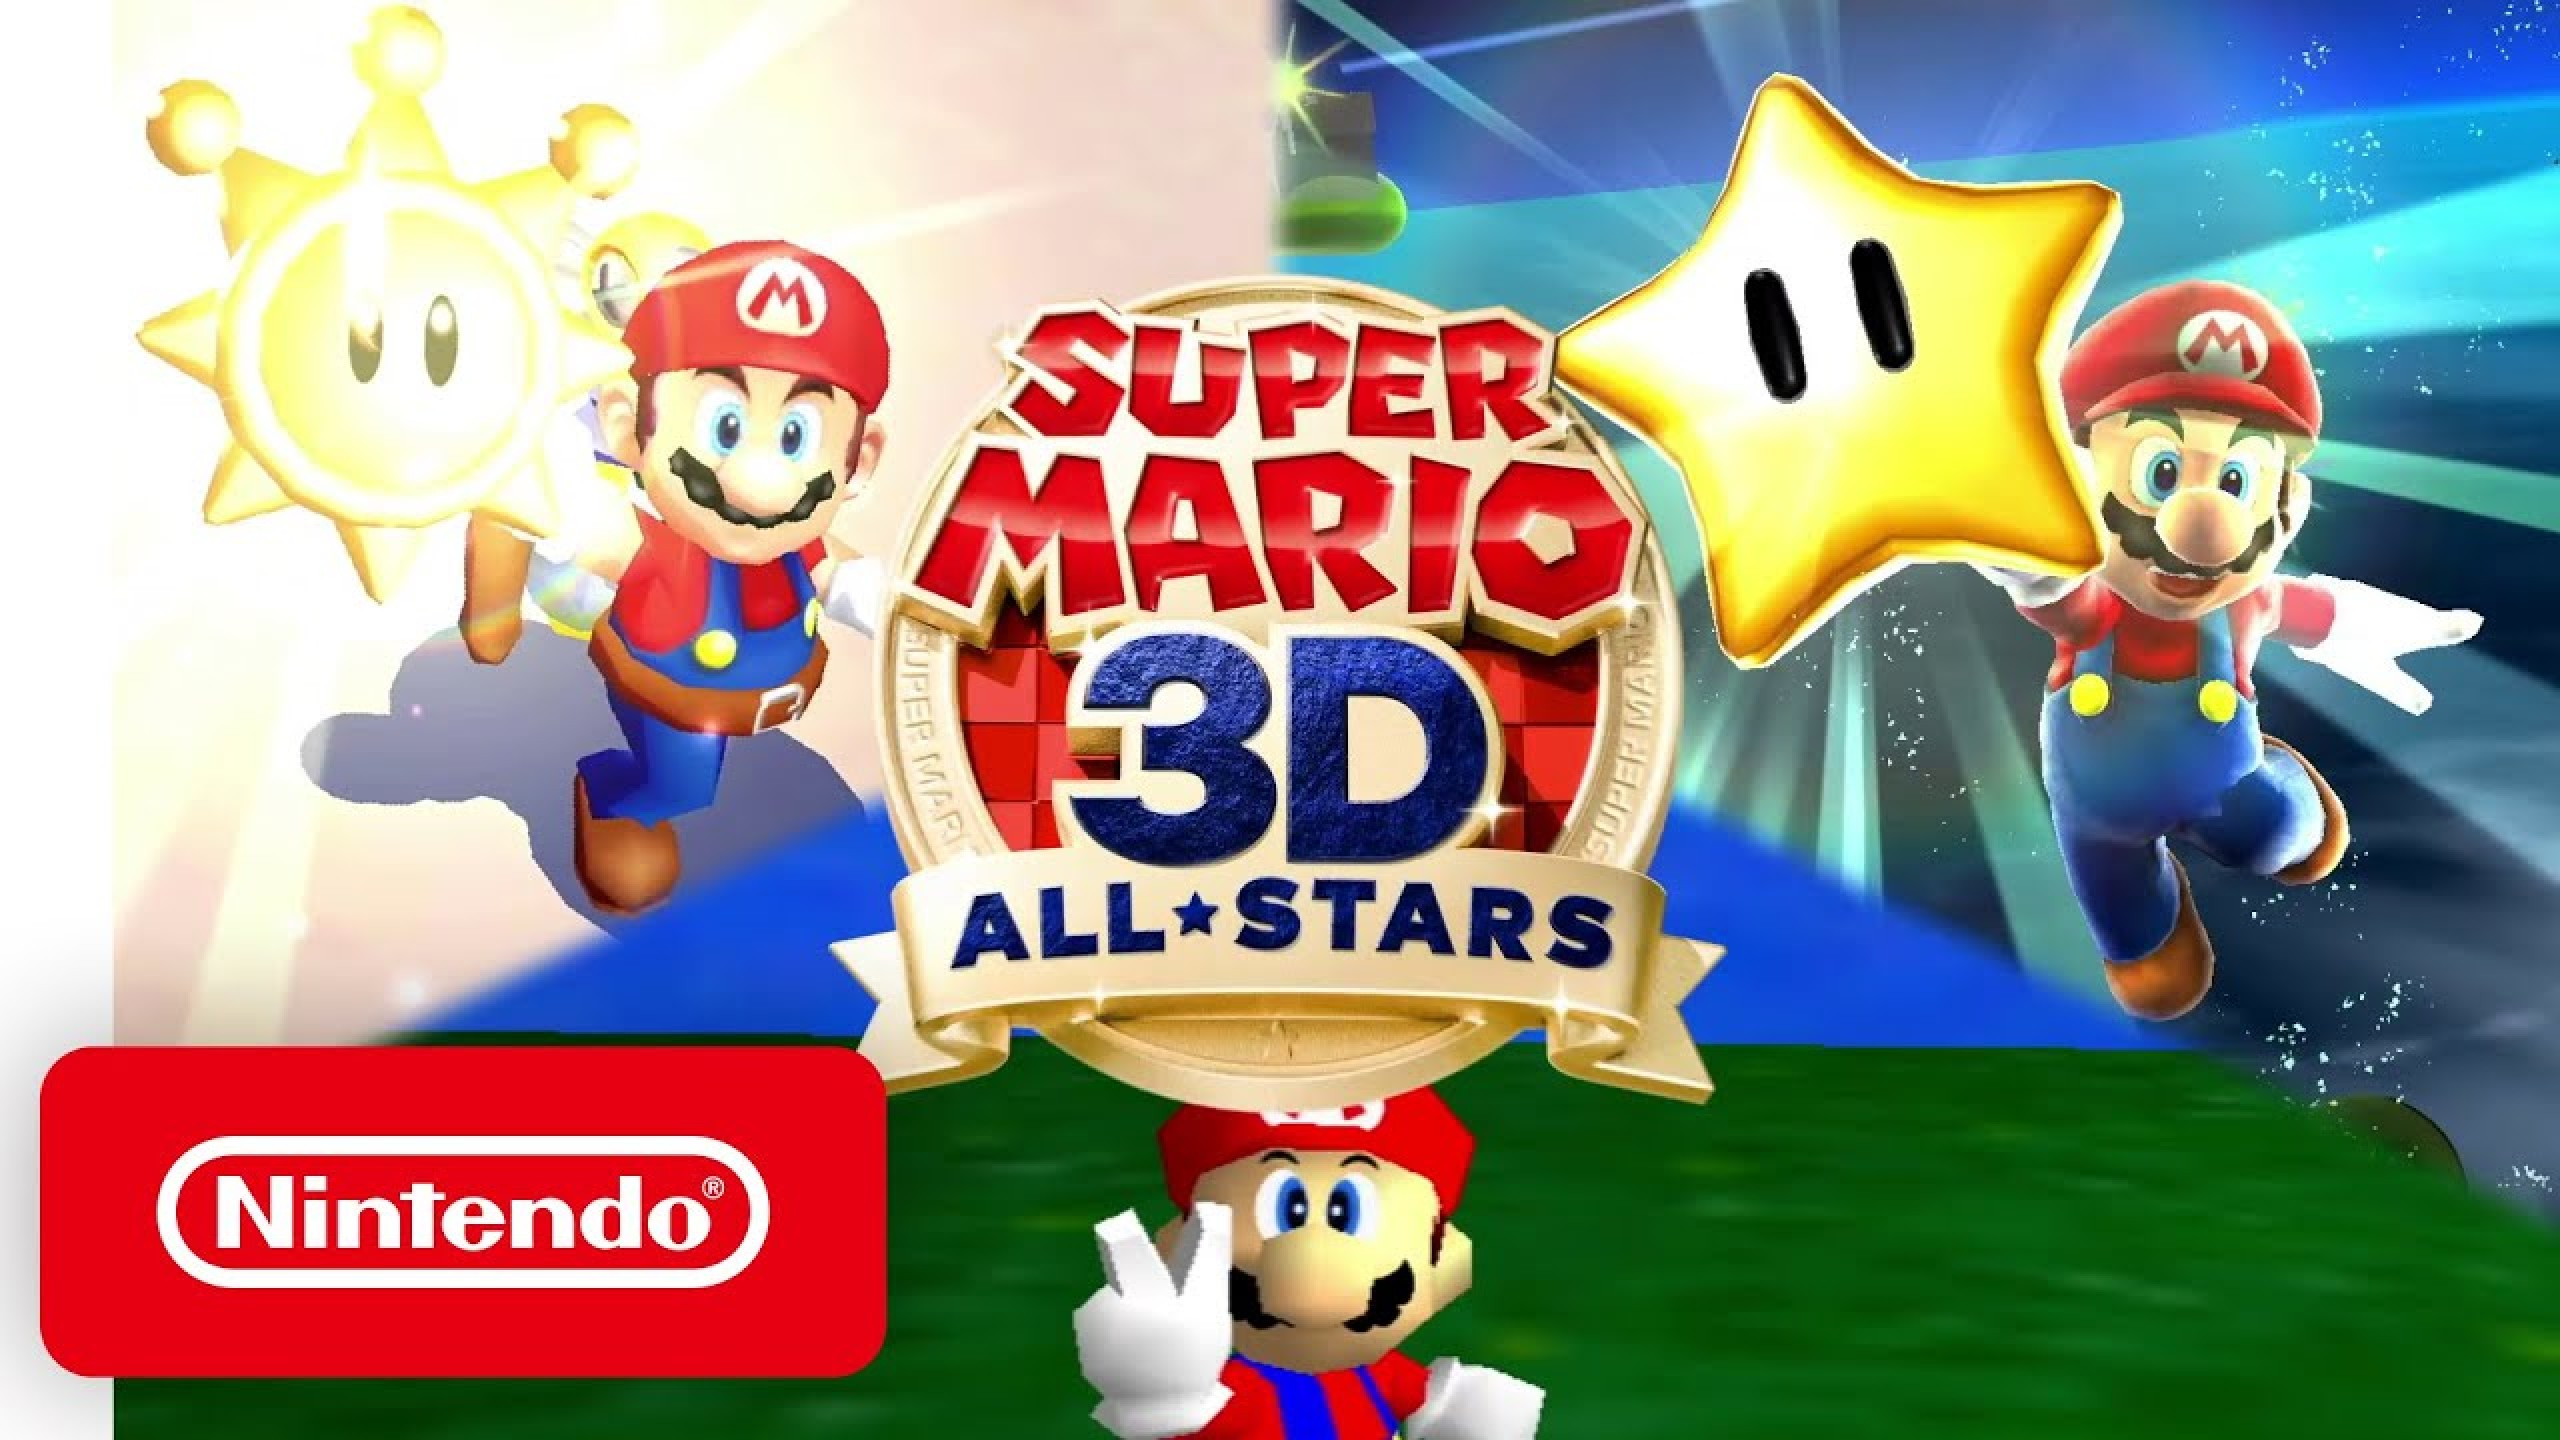 Nintendo to Re-Release its blockbuster Hit Mario Games